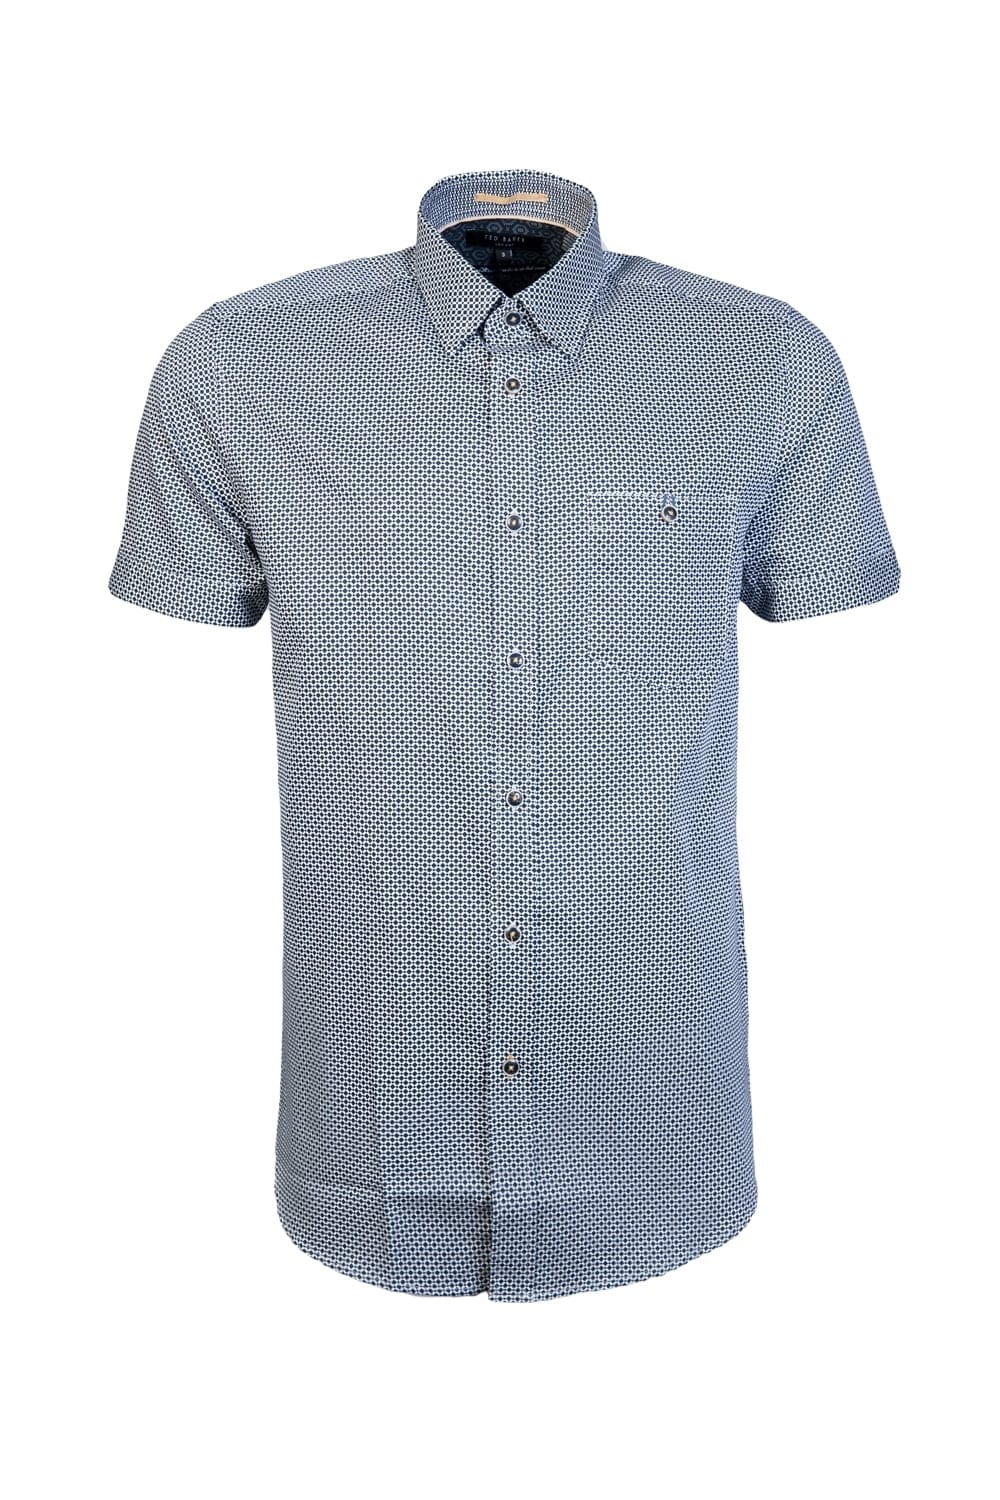 6db4068eaa6d9 Ted Baker Short Sleeve Shirt TS7M GA31 MUNKEE 10 - Clothing from ...